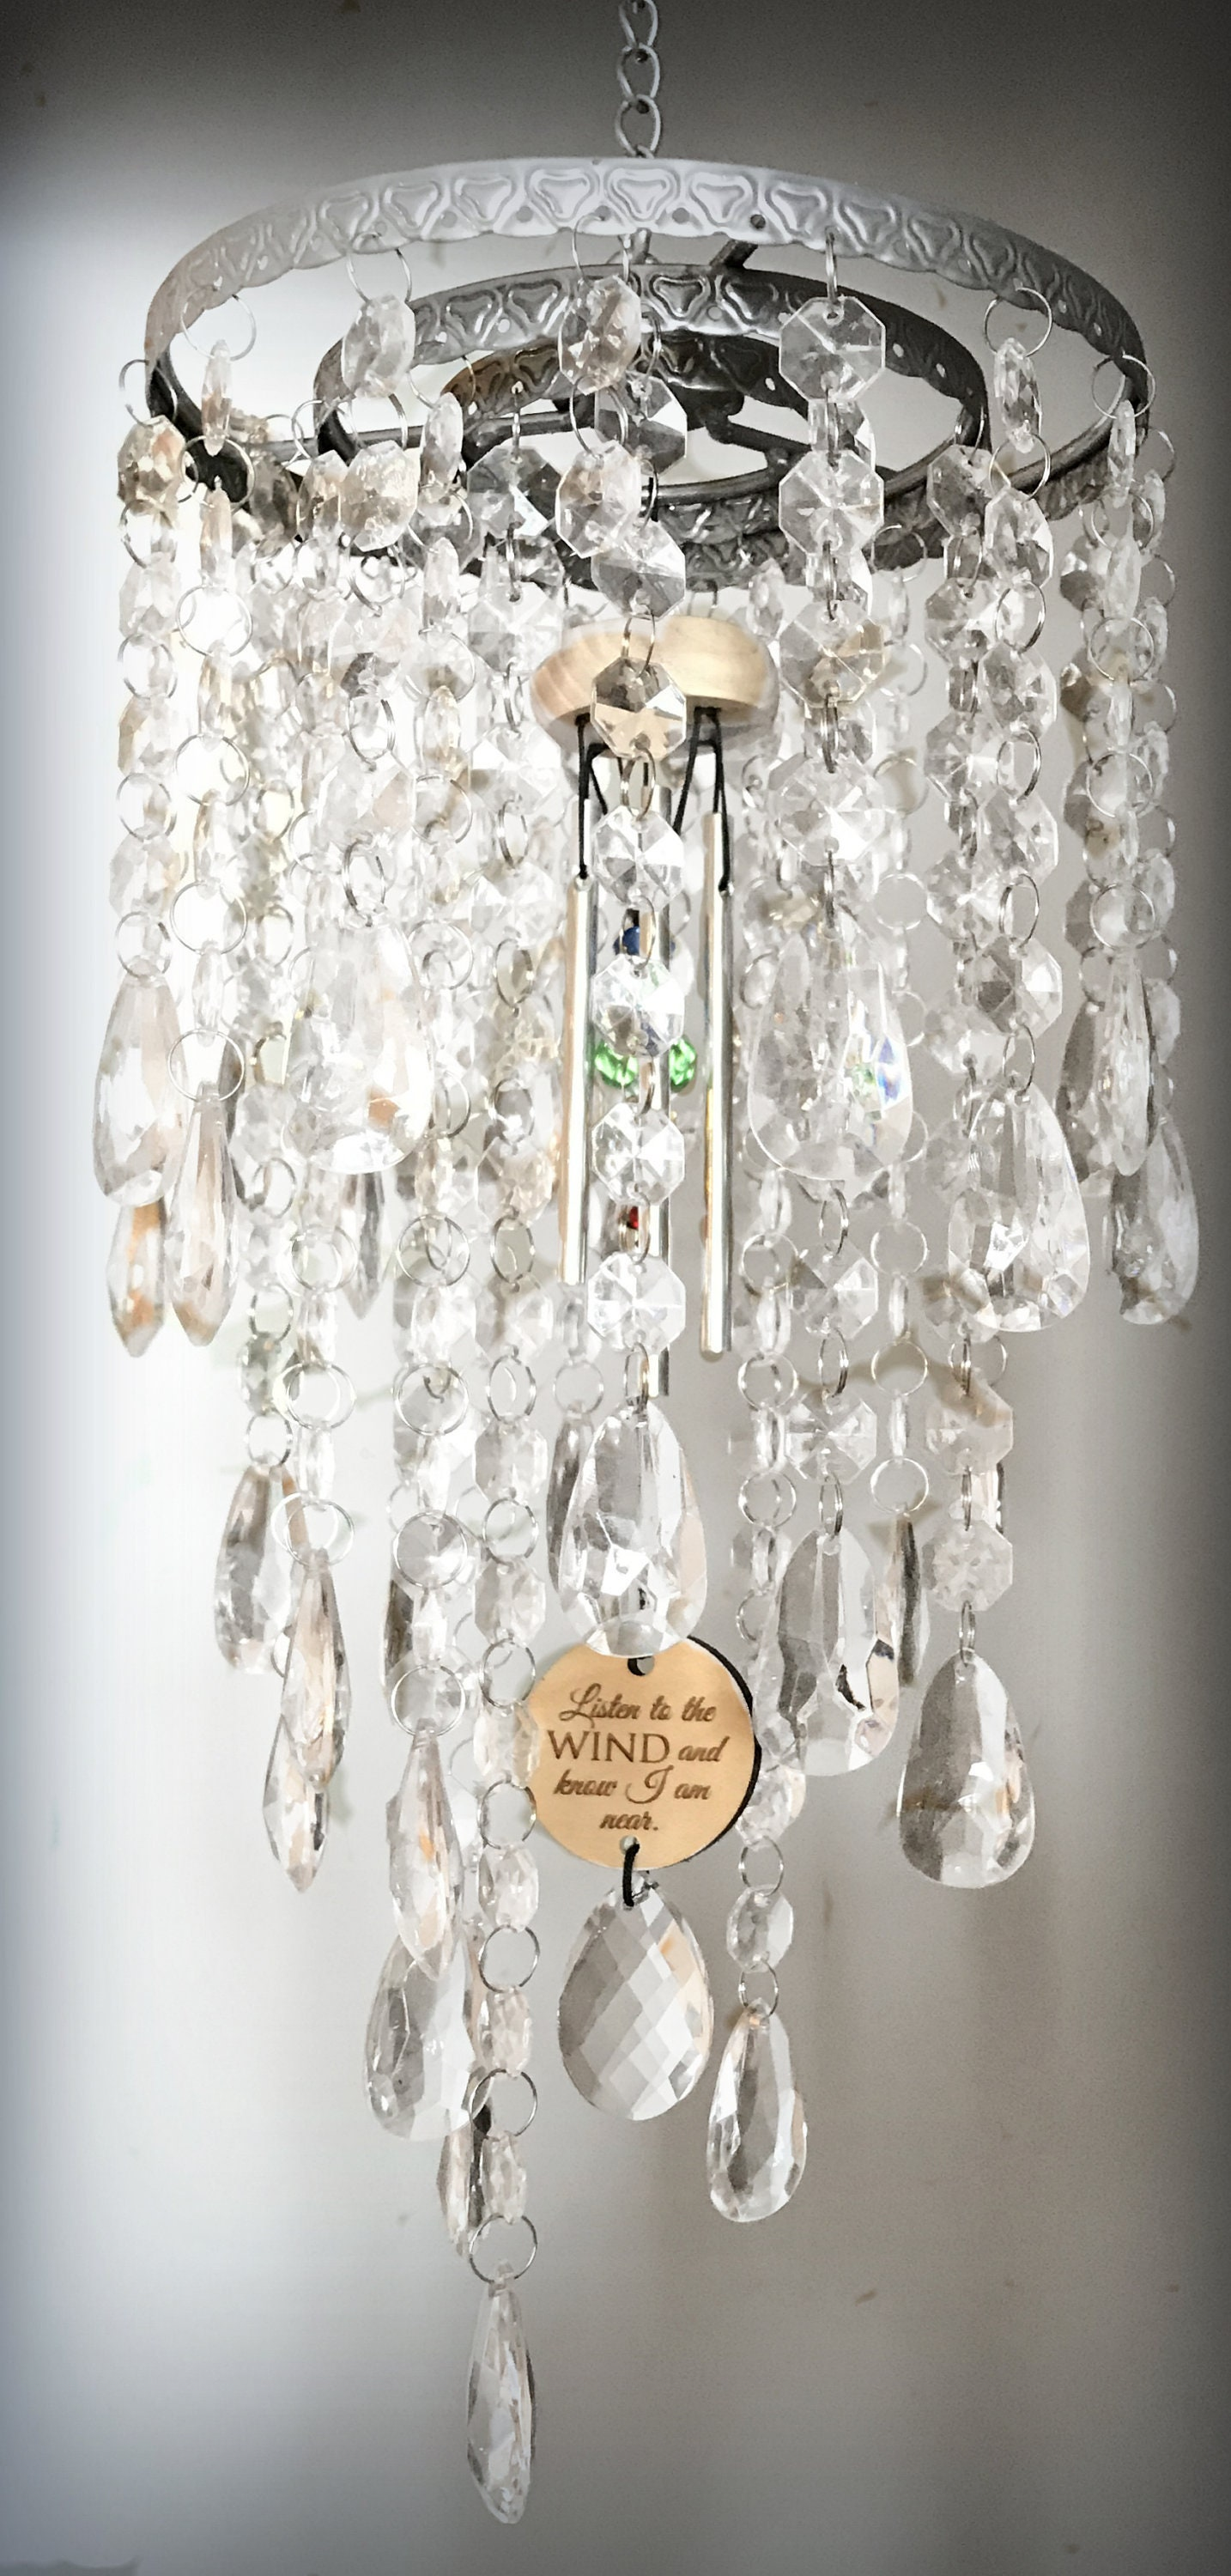 Mothers datmorial chandelier wind chime sun catcher gift zoom arubaitofo Image collections